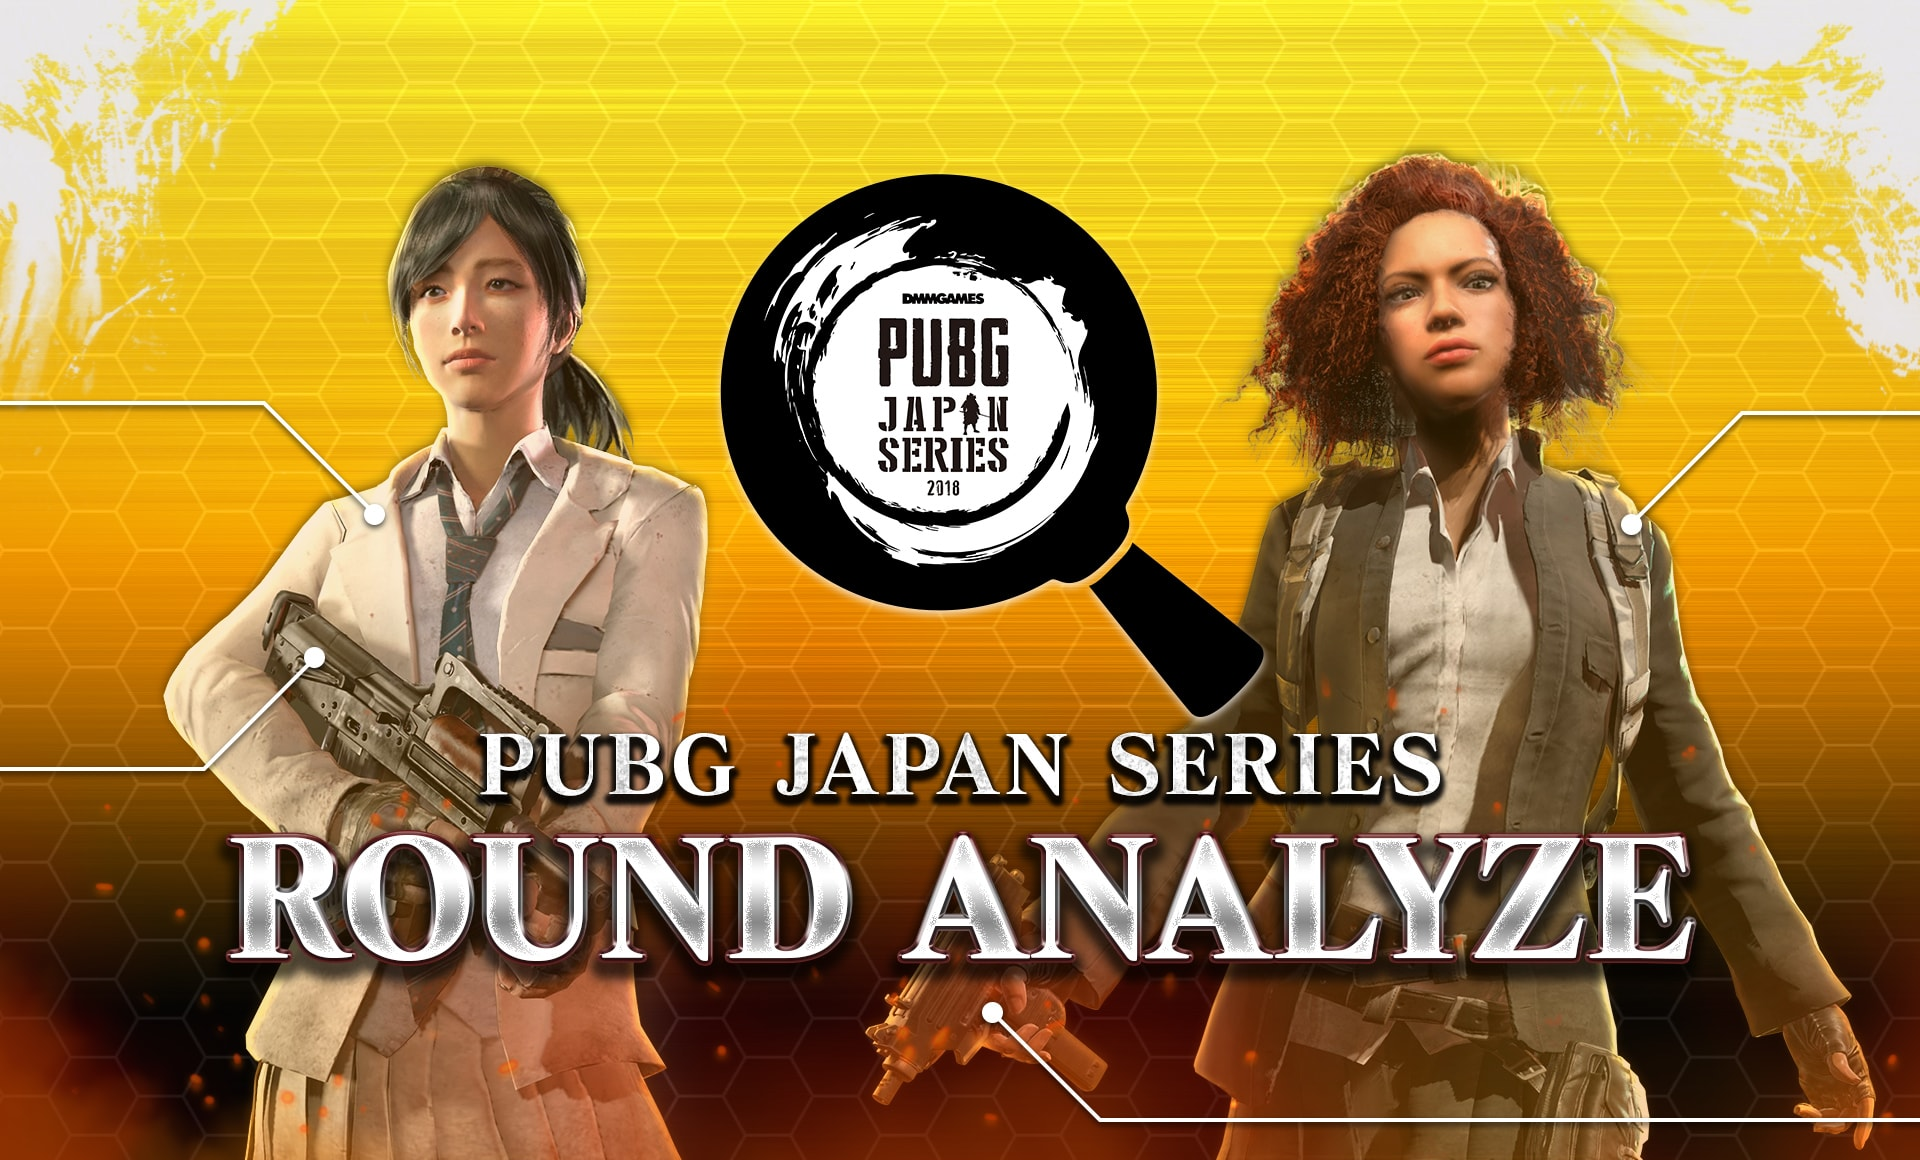 PUBG JAPAN SERIES αリーグ PHASE2 DAY6 ROUND7 ANALYZE